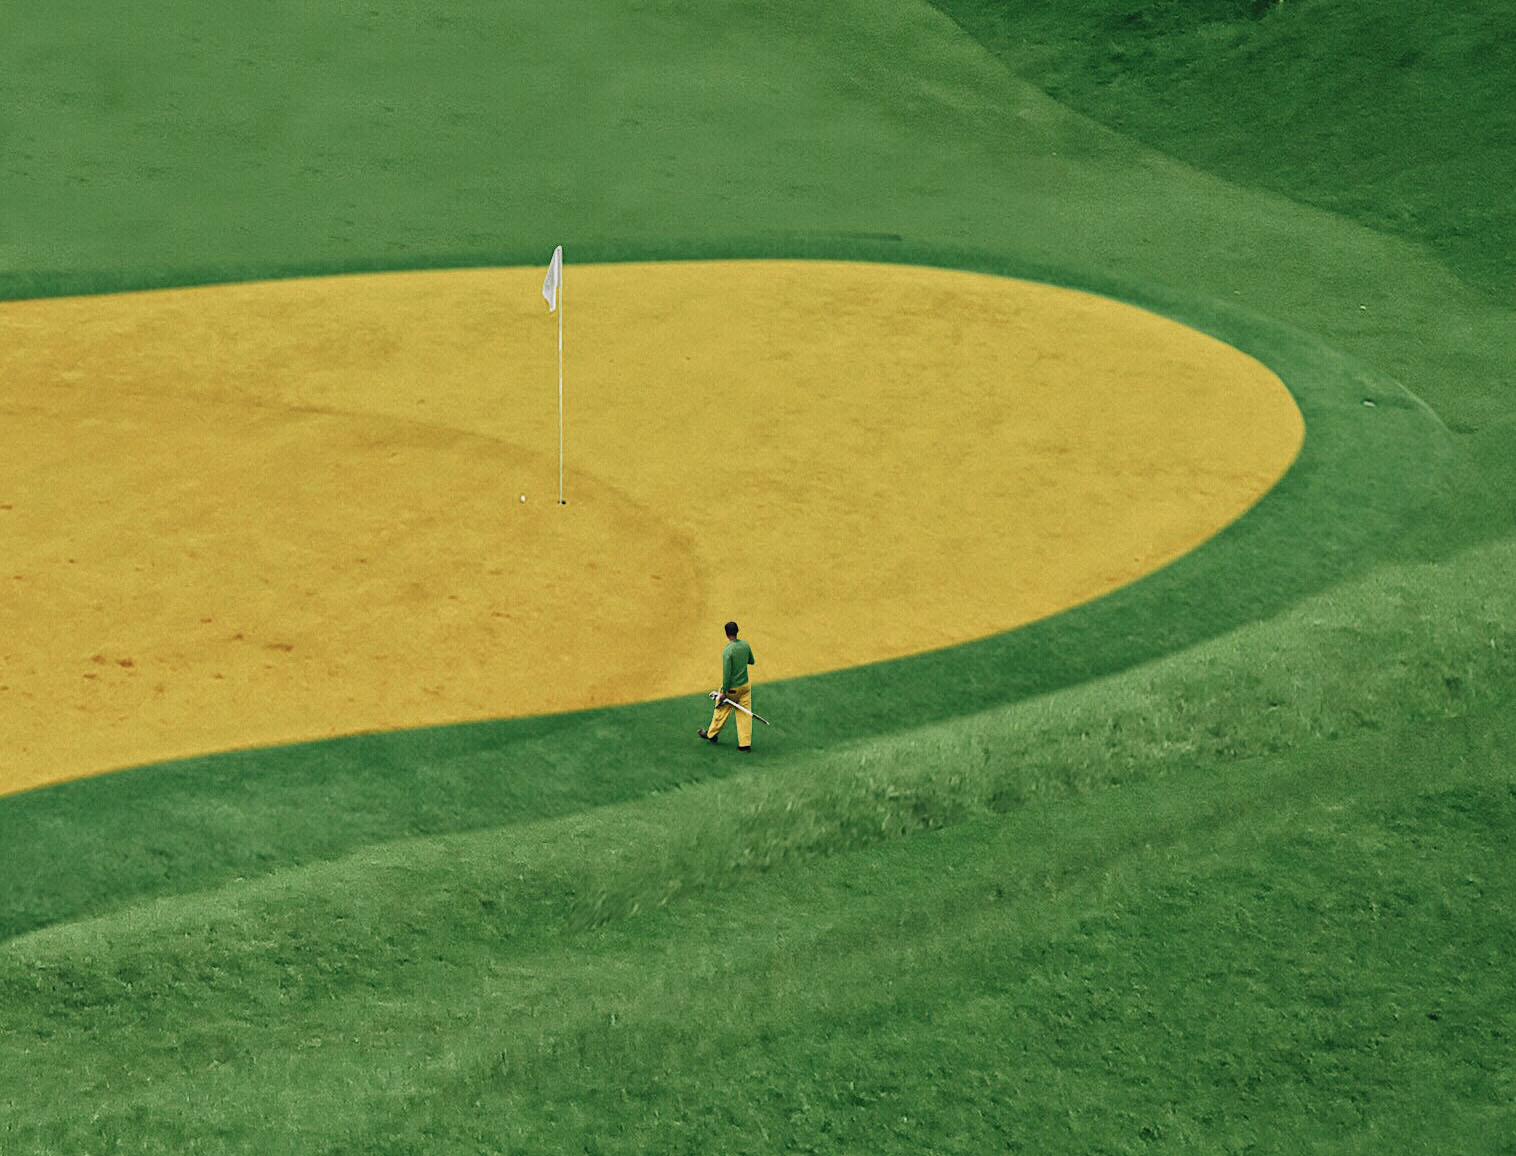 A man in the middle of a golf course | Andhika Ramadhian | STIR